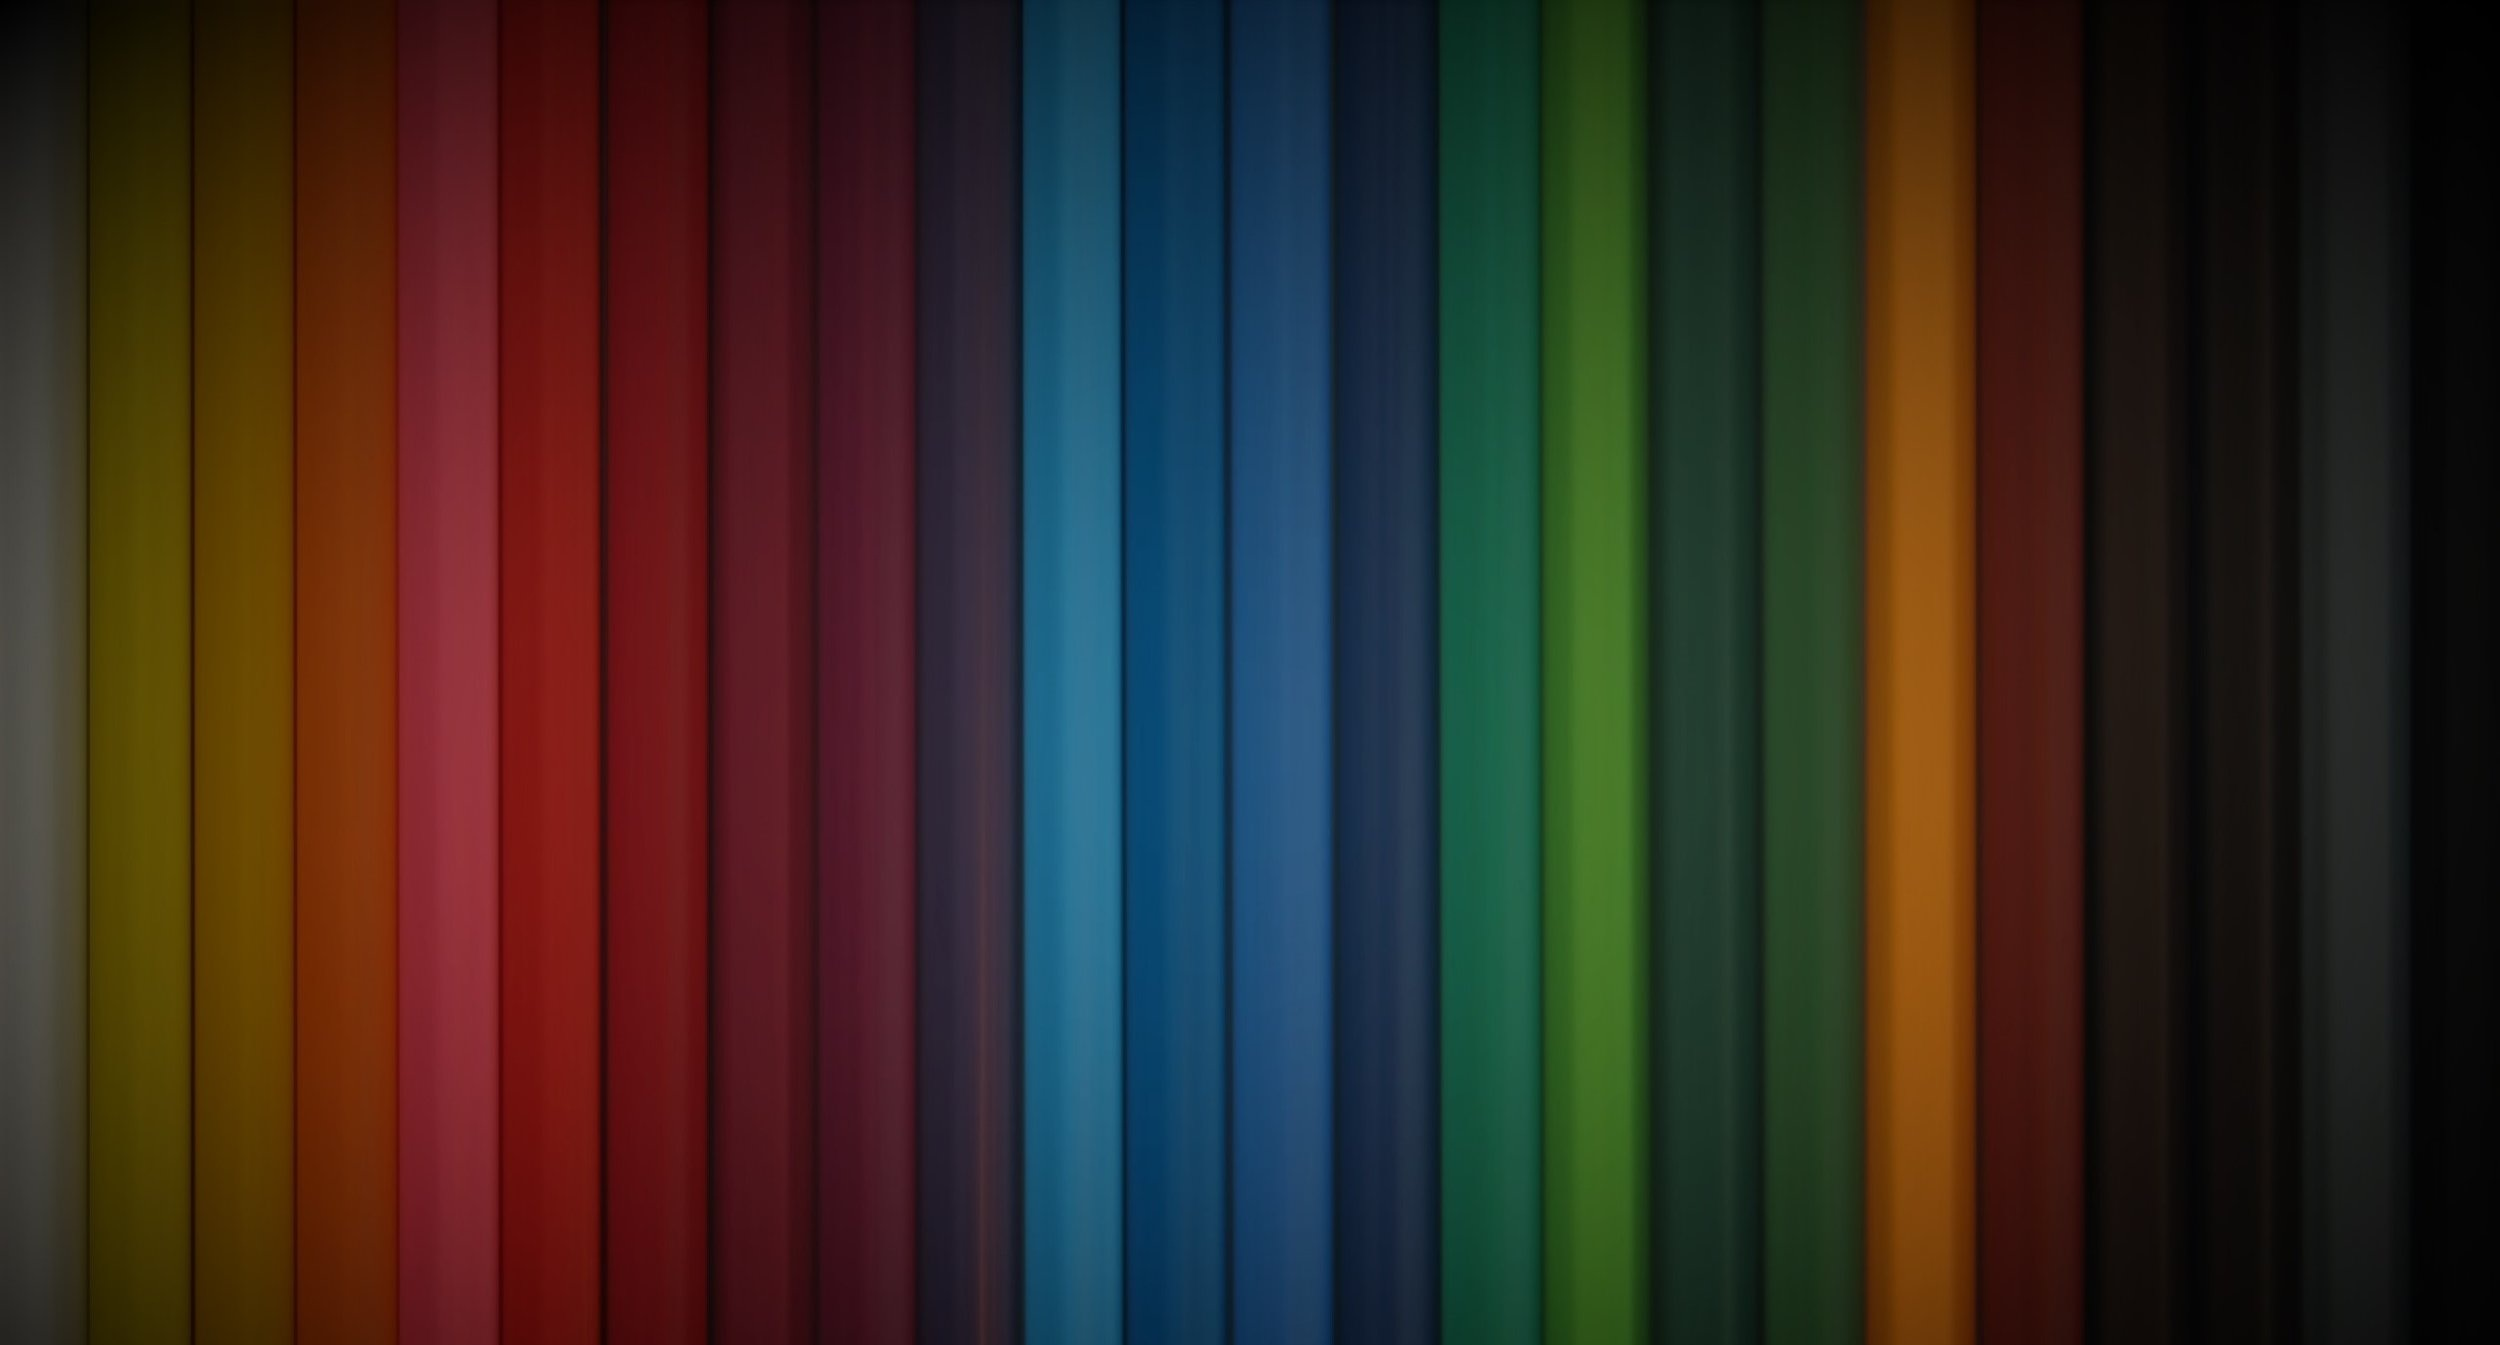 Tv-Color-Bars-Wallpaper-20.jpg